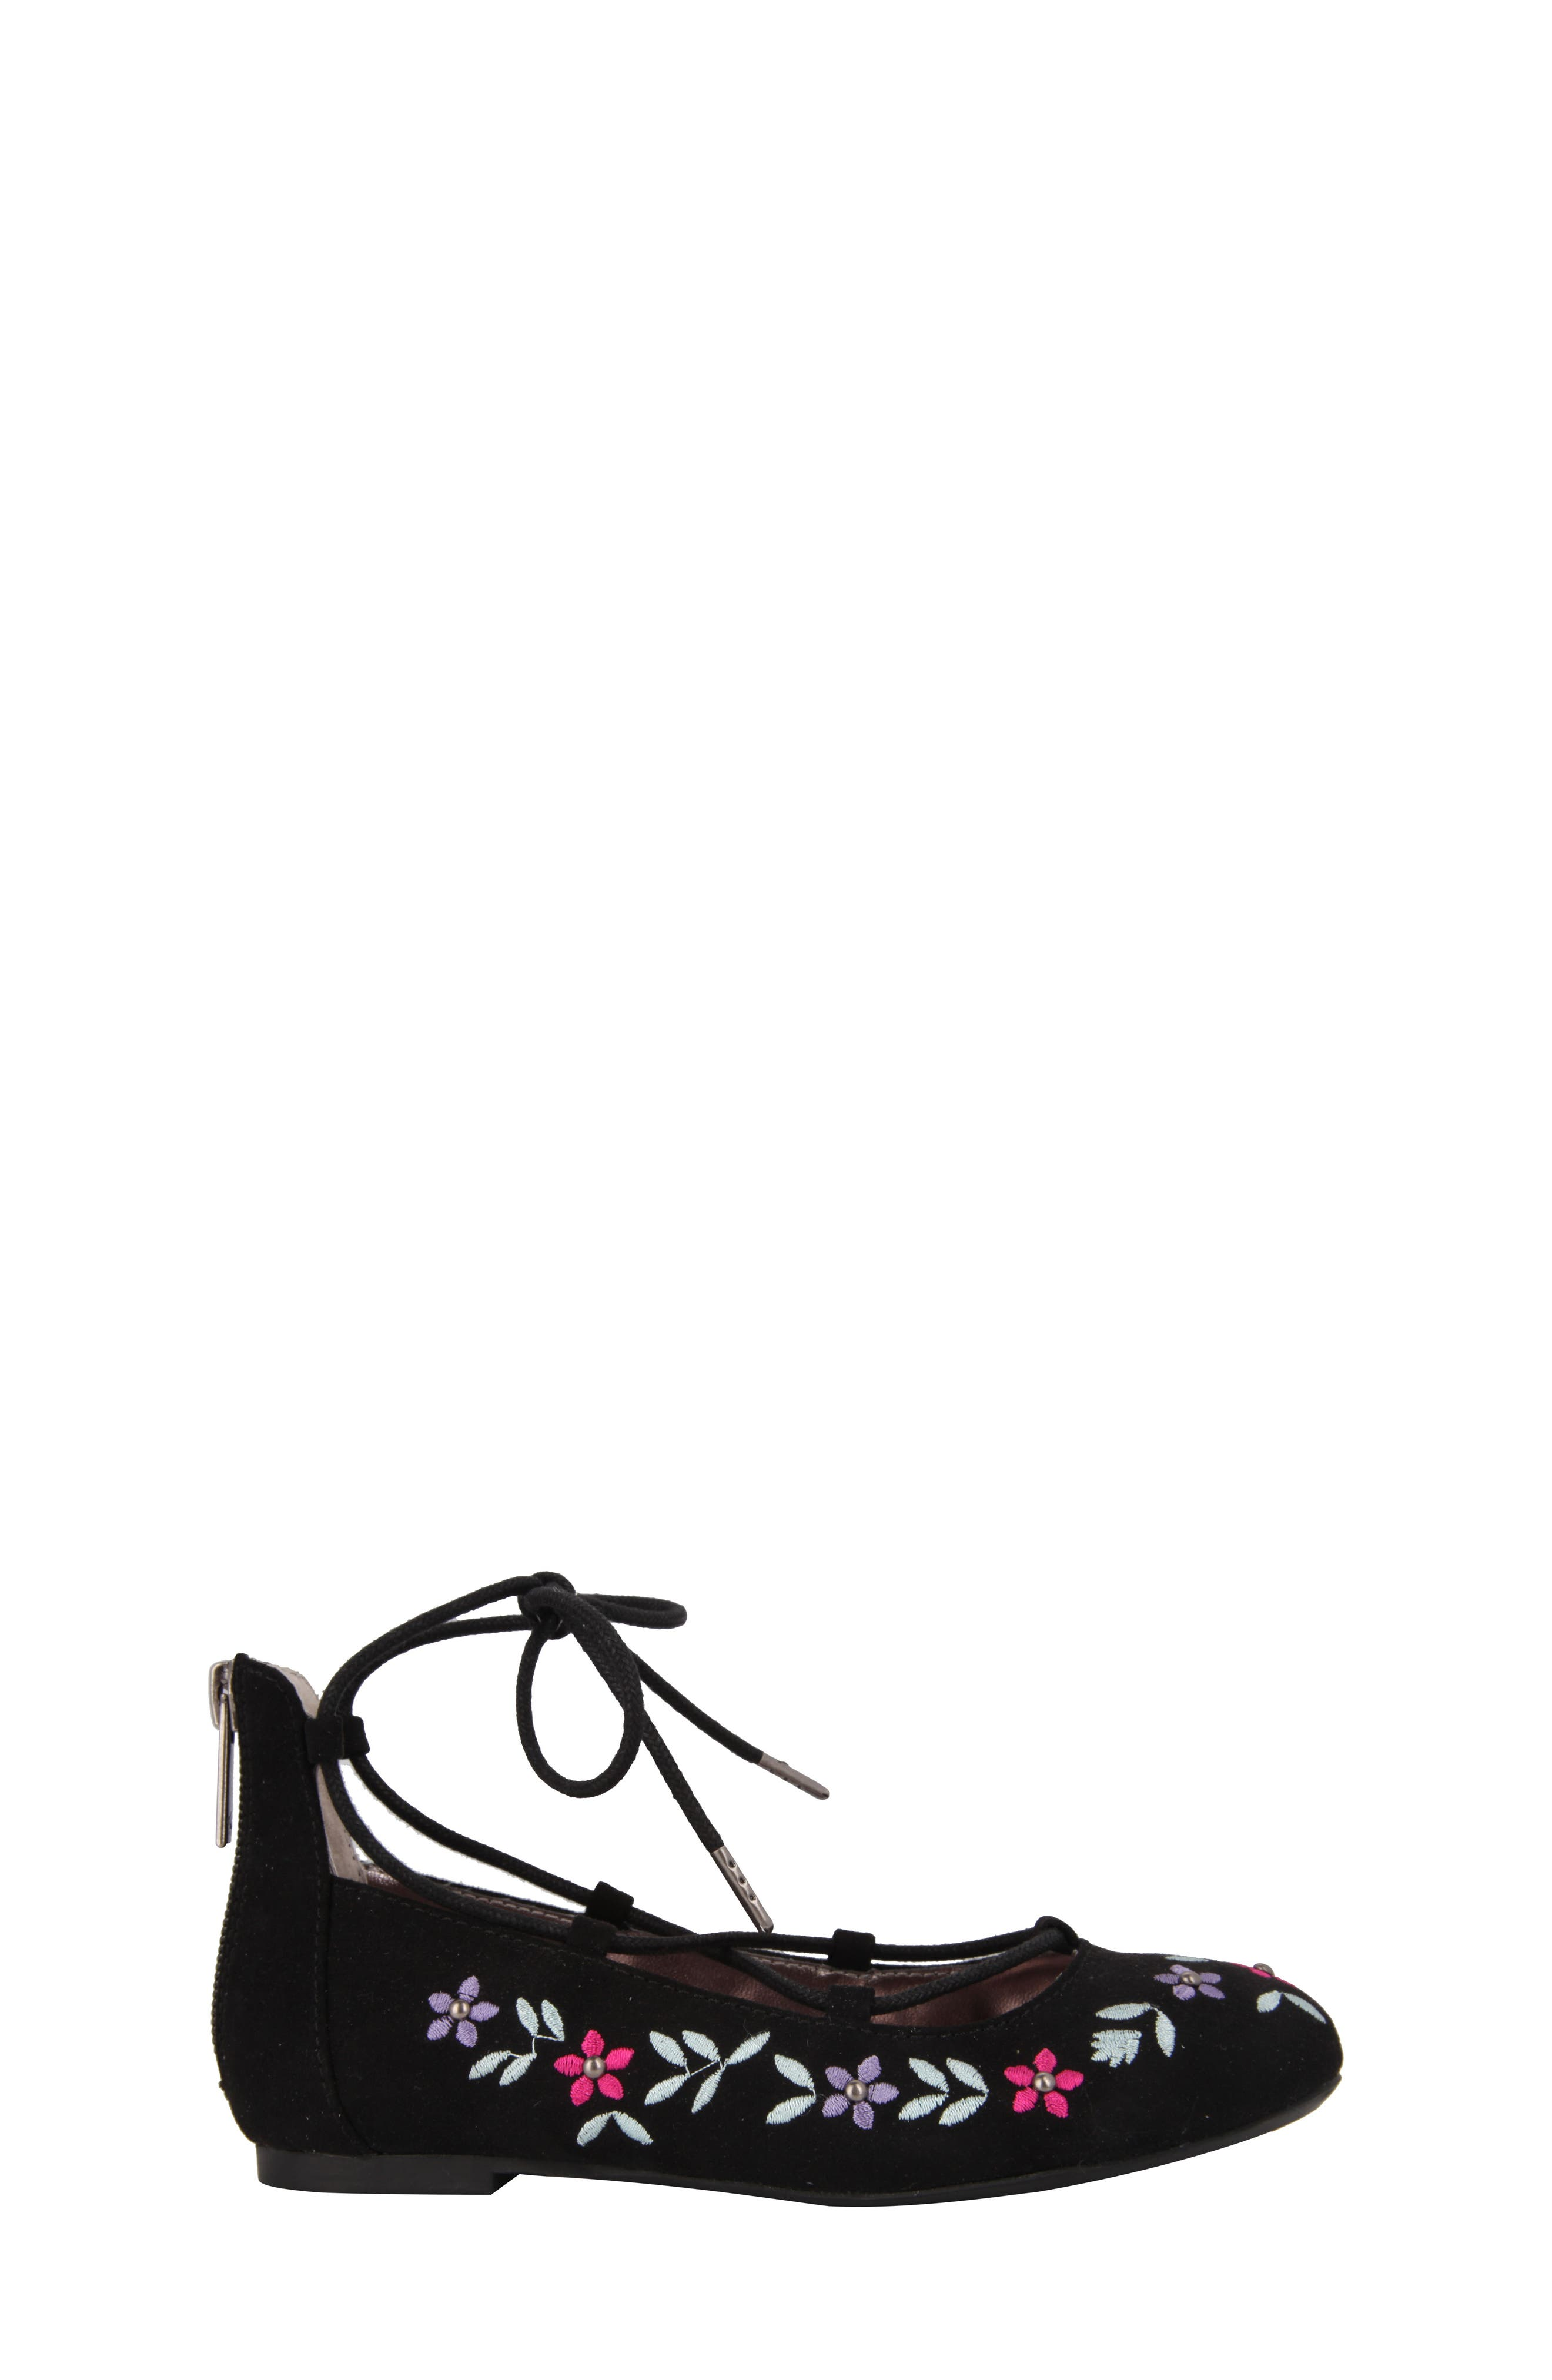 Nelly Embroidered Ghillie Flat,                             Alternate thumbnail 3, color,                             003